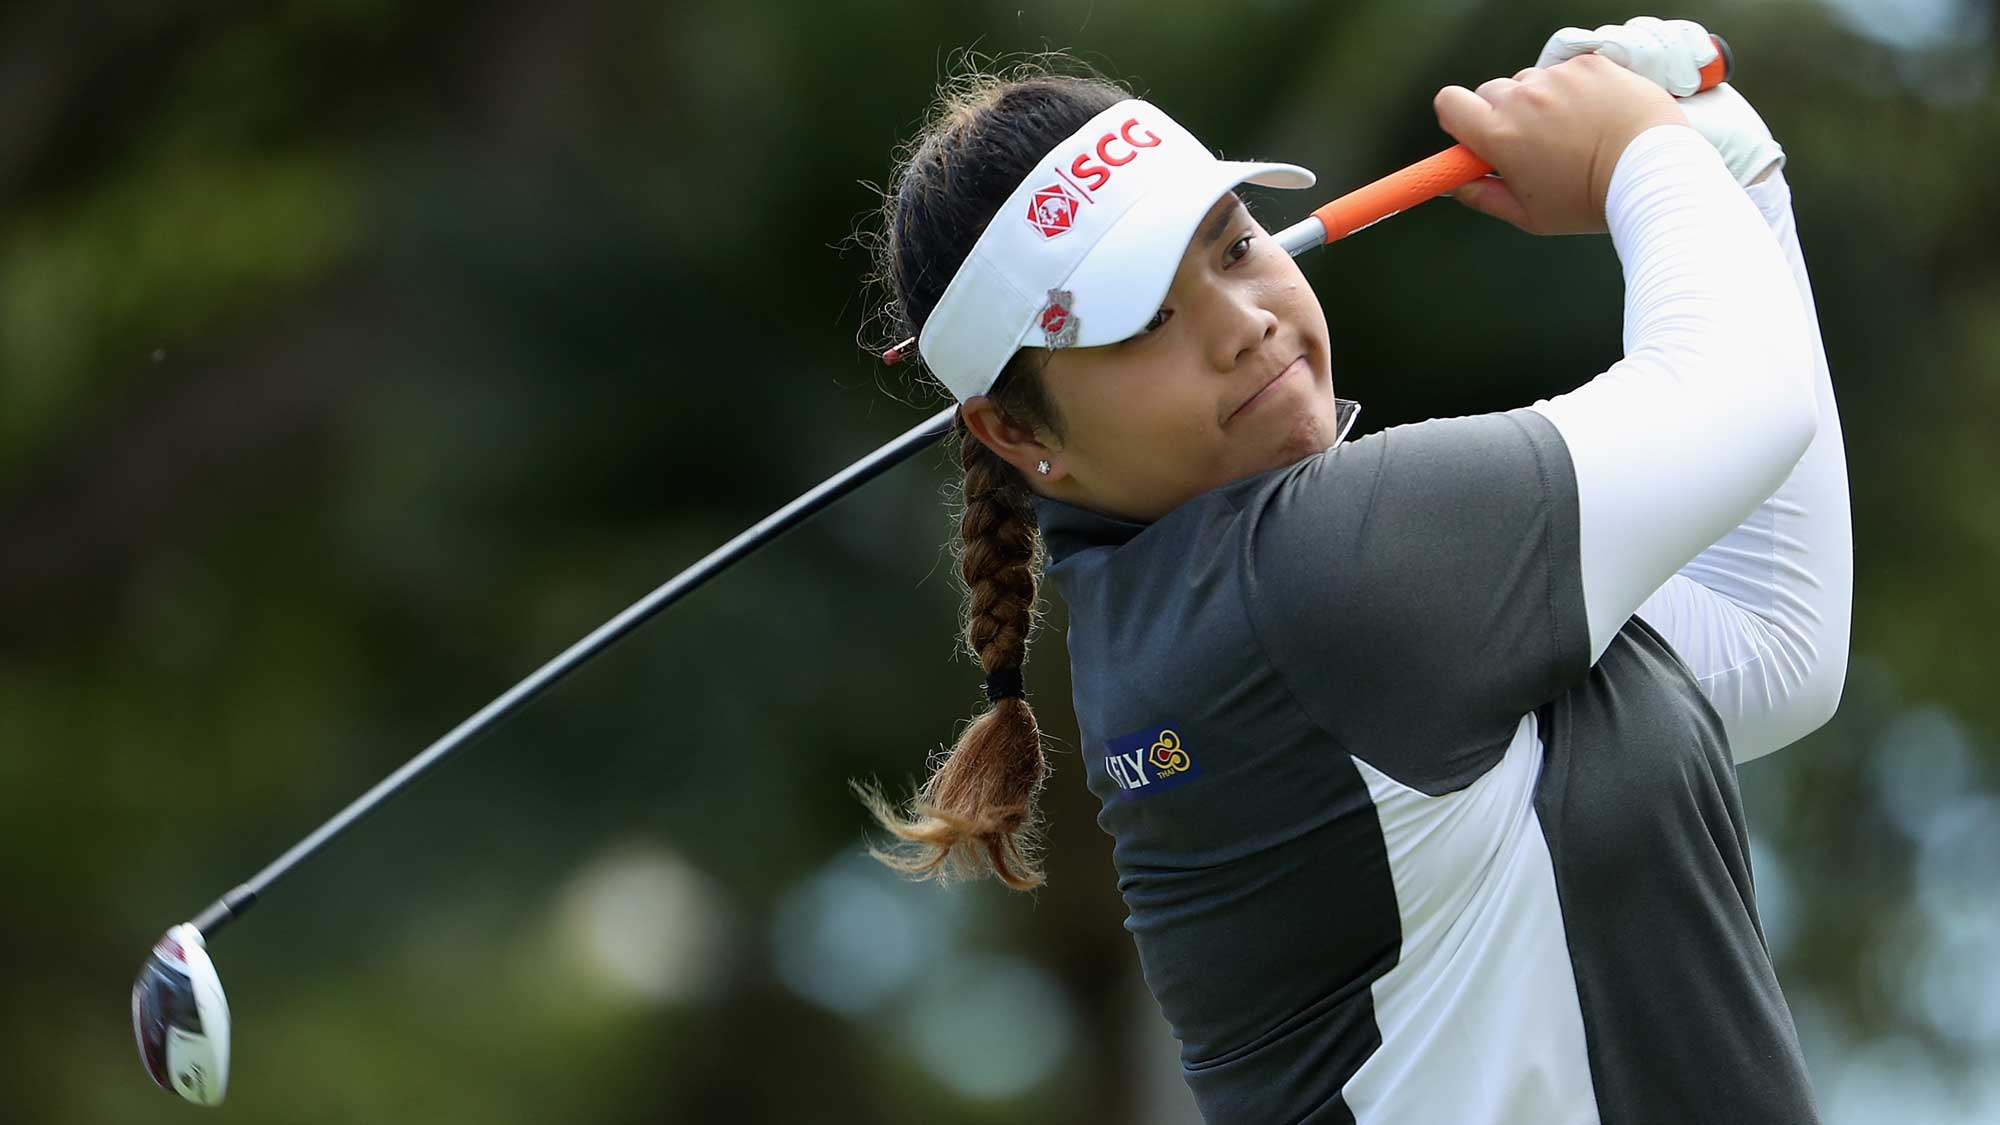 Ariya Jutanugarn of Thailand plays a tee shot on the eighth hole during the first round of the LPGA LOTTE Championship Presented By Hershey